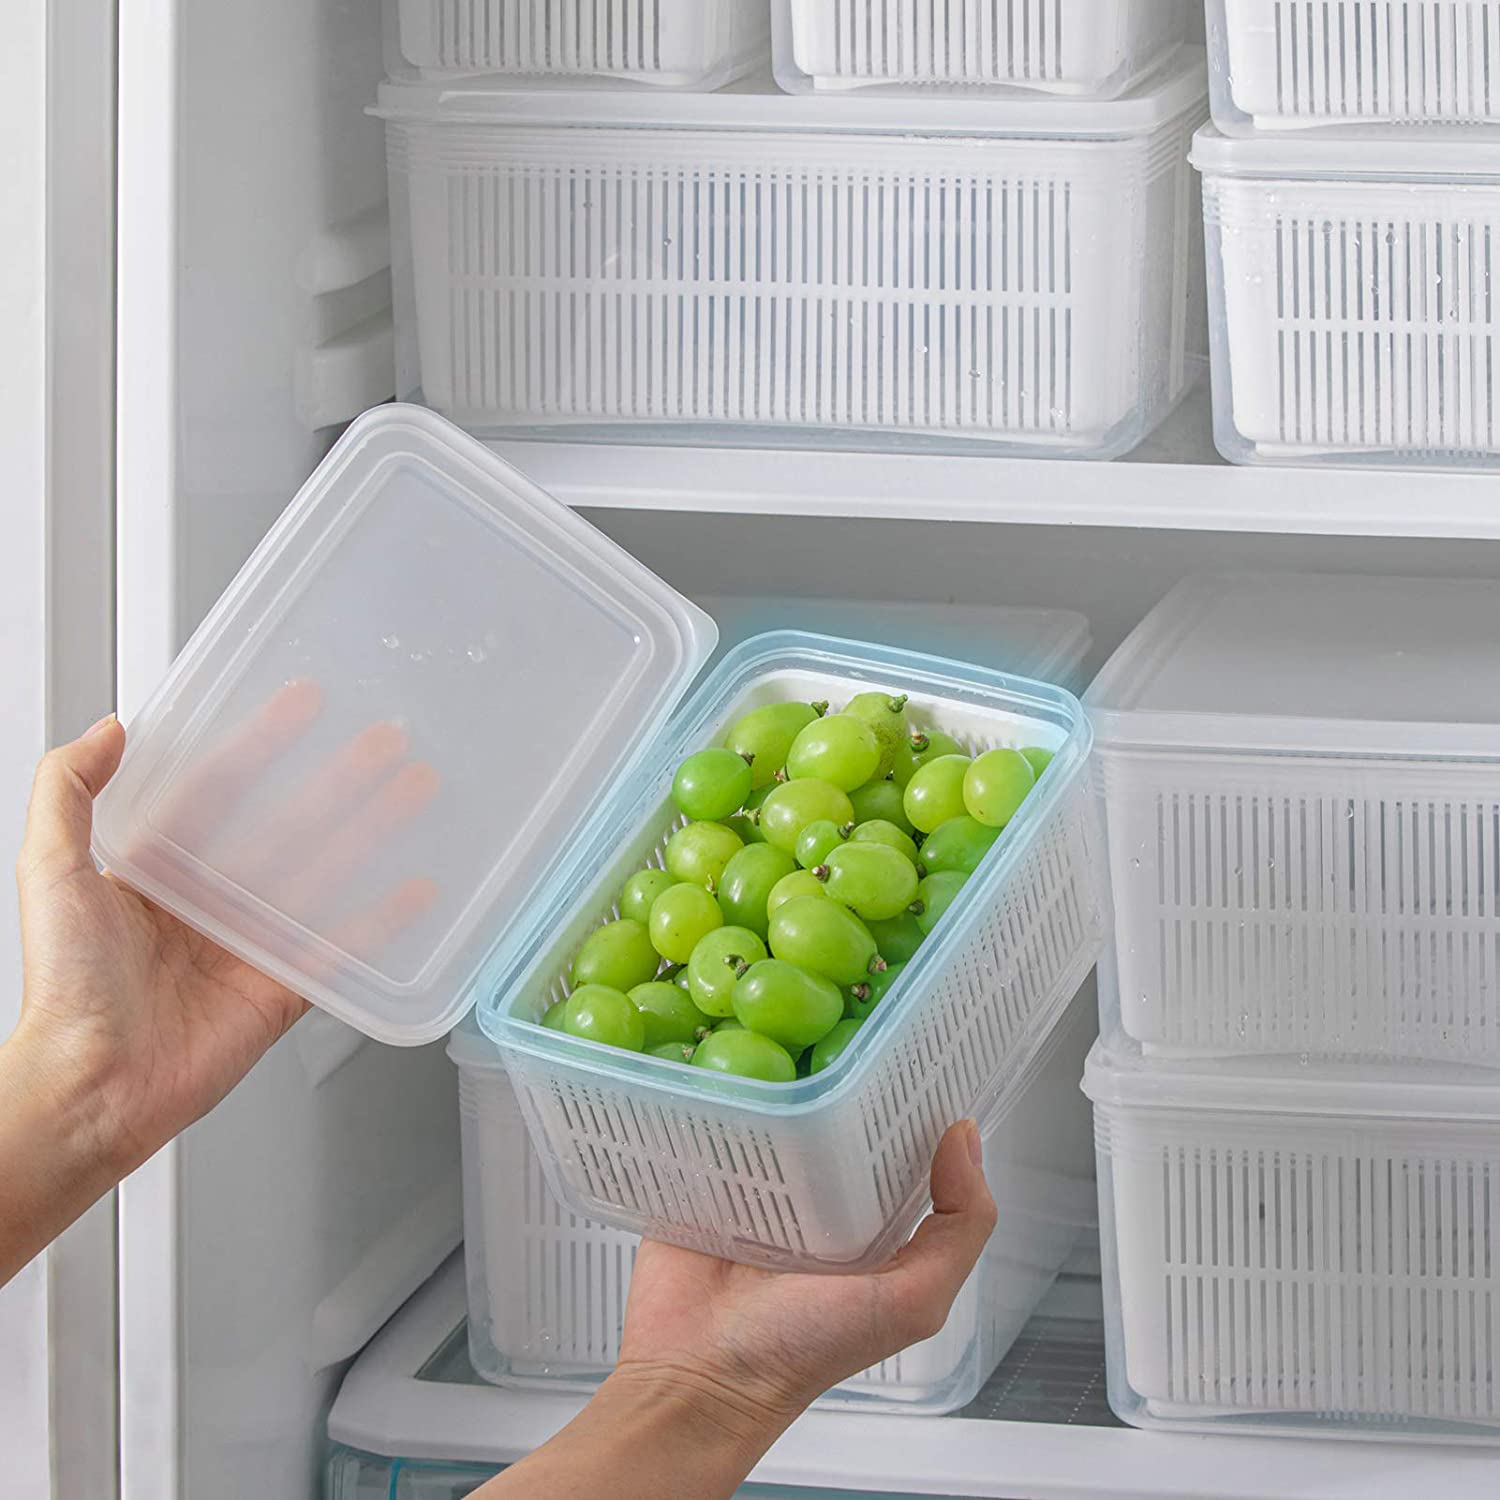 MOPMS Fresh Produce Vegetable Fruit Storage Containers For Refrigerator - Produce saver storage containers - Draining Crisper with Strainers-1.5L, 1PCS